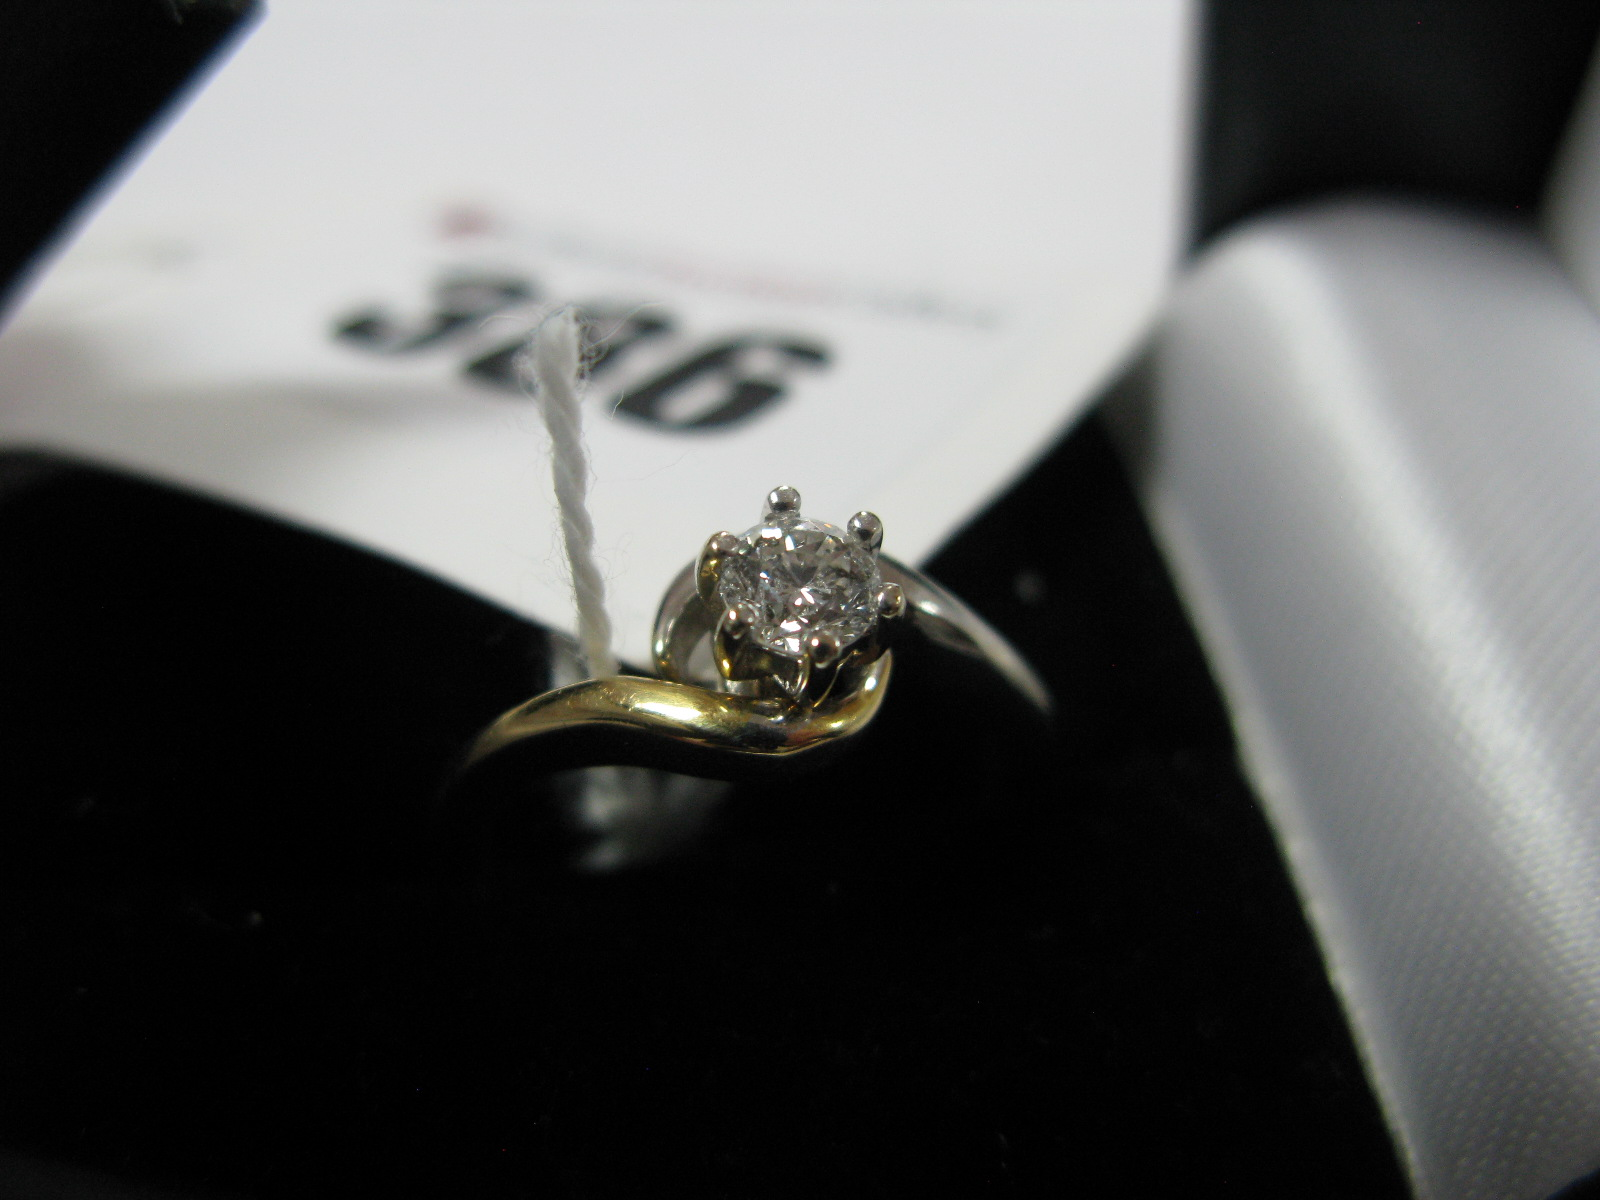 Lot 386 - A Modern 18ct Gold Single Stone Diamond Ring, the brilliant cut stone, claw set, between two tone